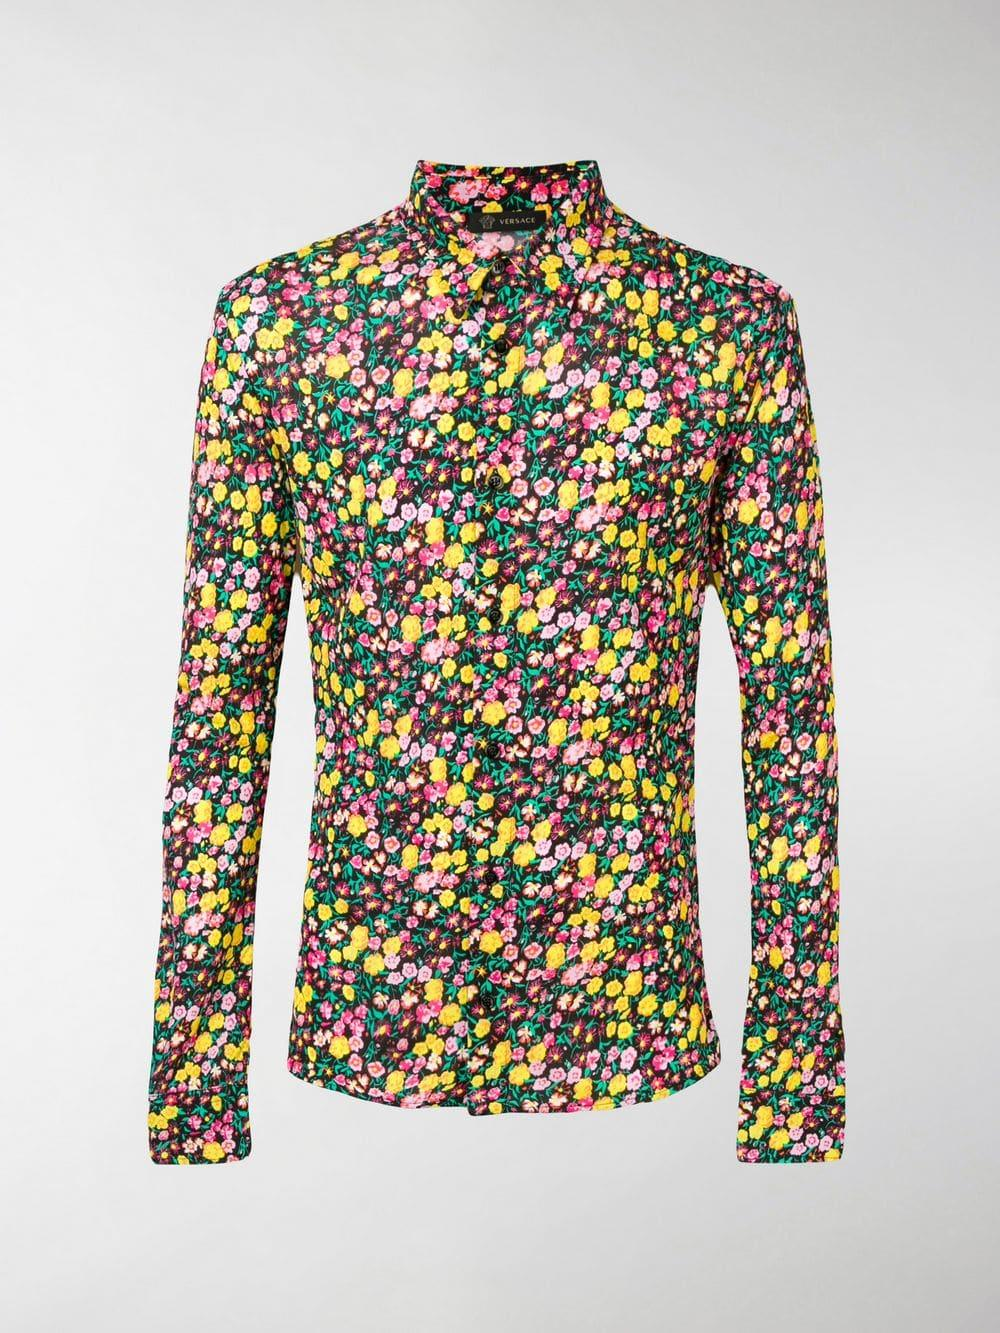 e96944879 Lyst - Versace Floral-print Shirt in Black for Men